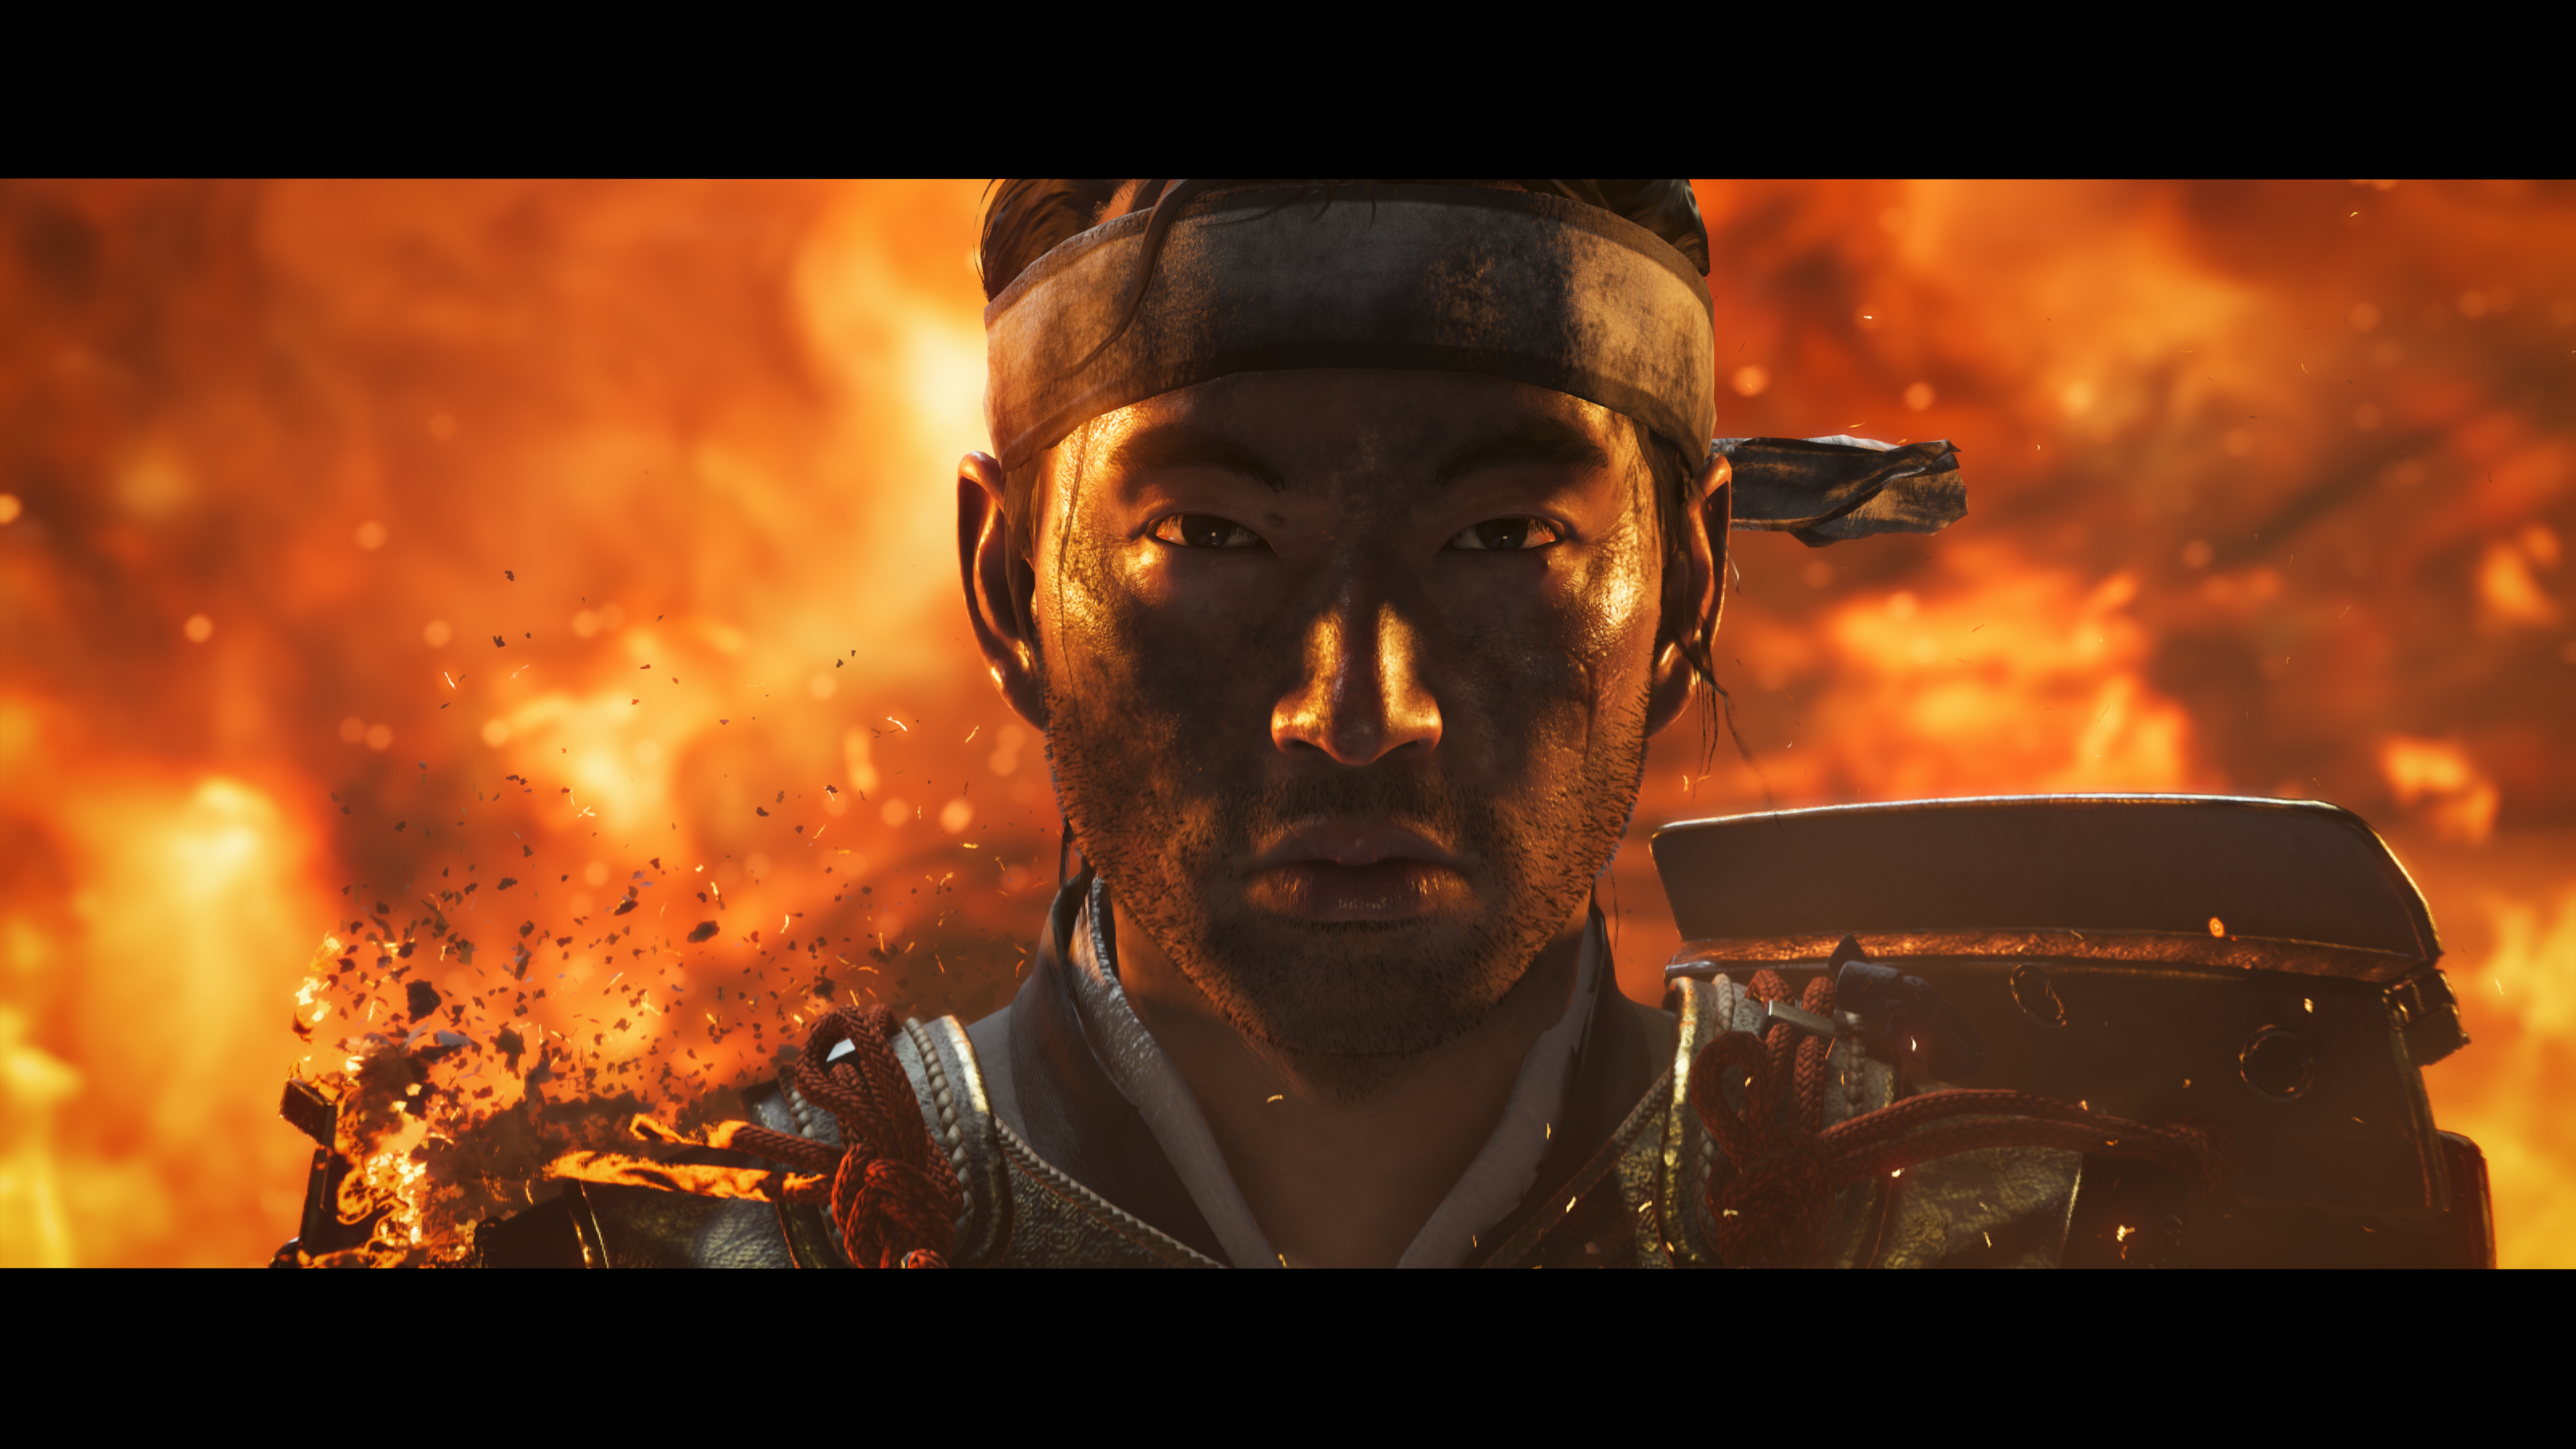 A Japanese village burns behind a lone surviving samurai Sucker Punch Productions Sony Interactive Entertainment